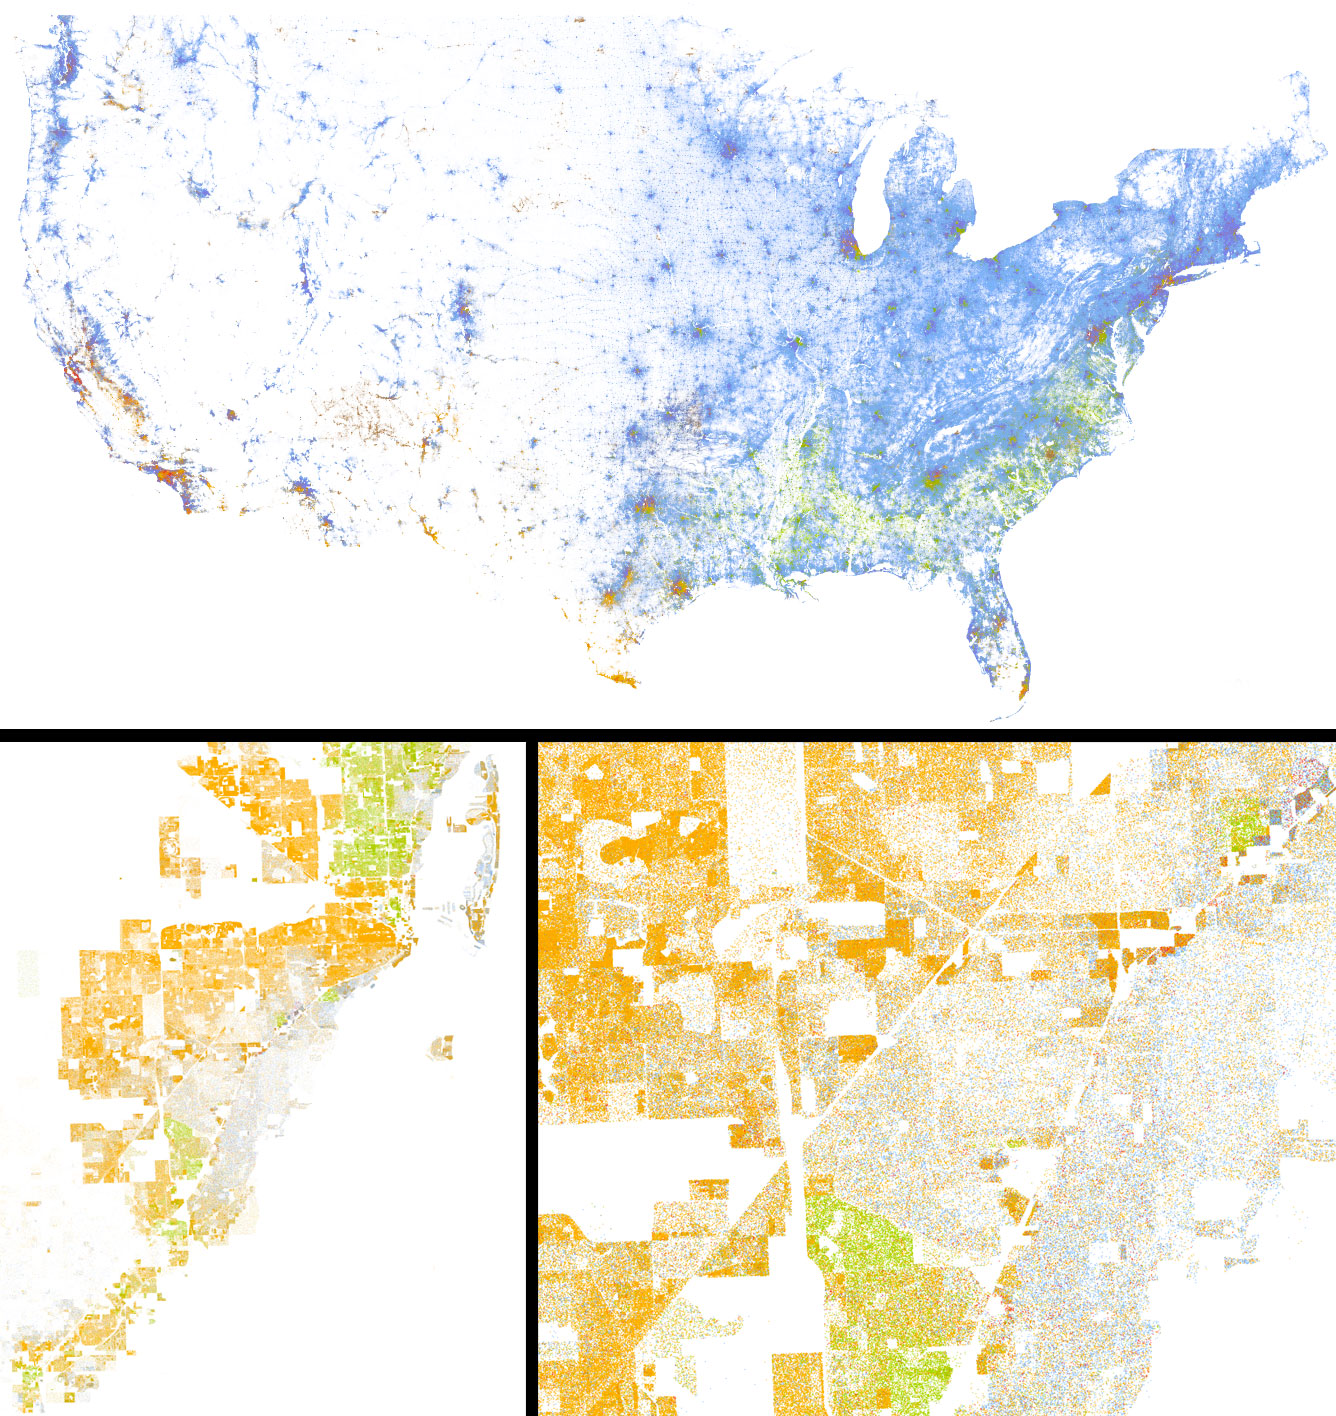 the map on the left has been making the rounds in social media in the blogosphere and even in mainstream publications recently so i may be a bit late to